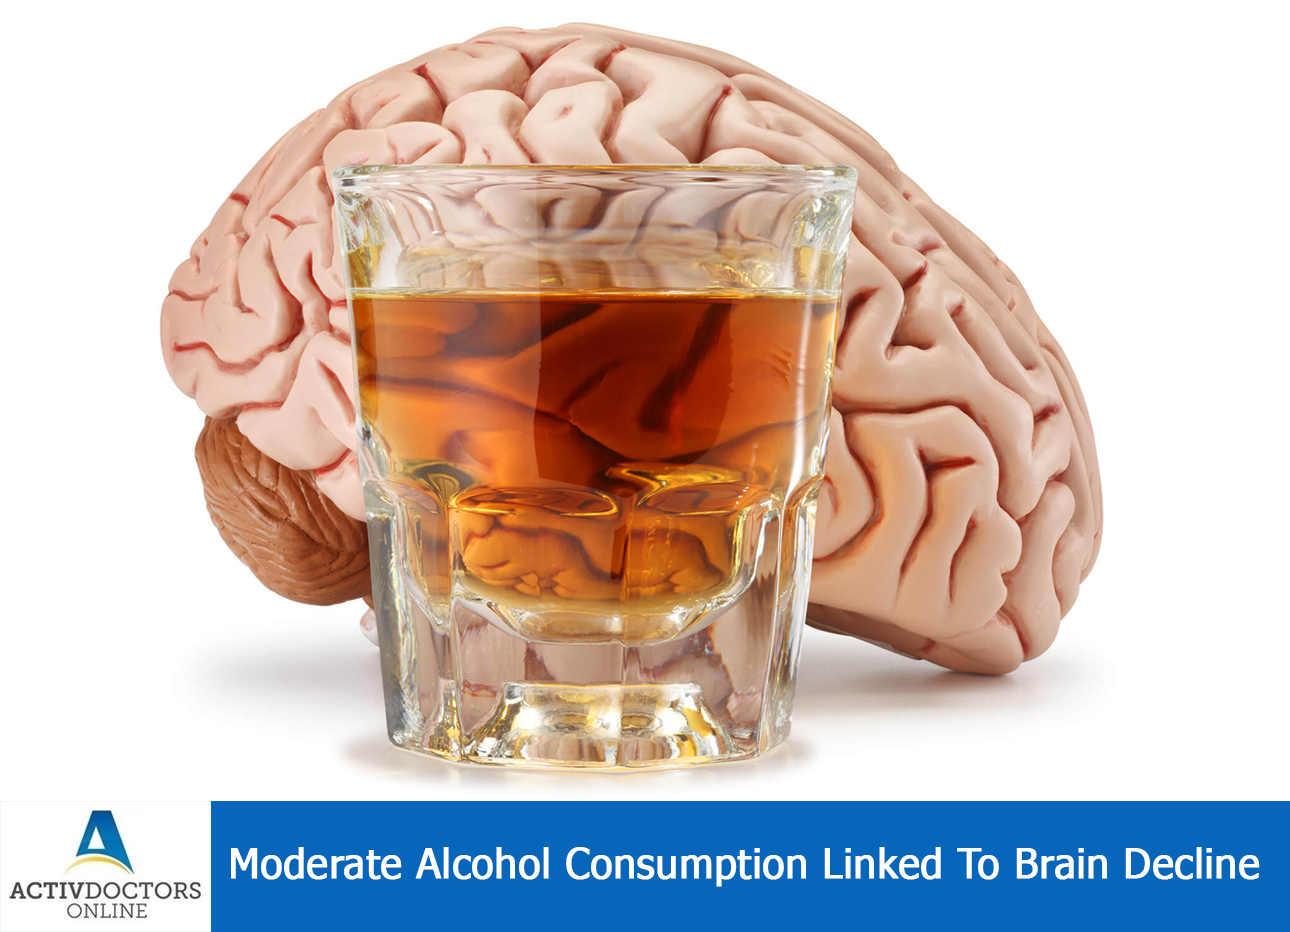 Moderate Alcohol Consumption Linked To Brain Decline